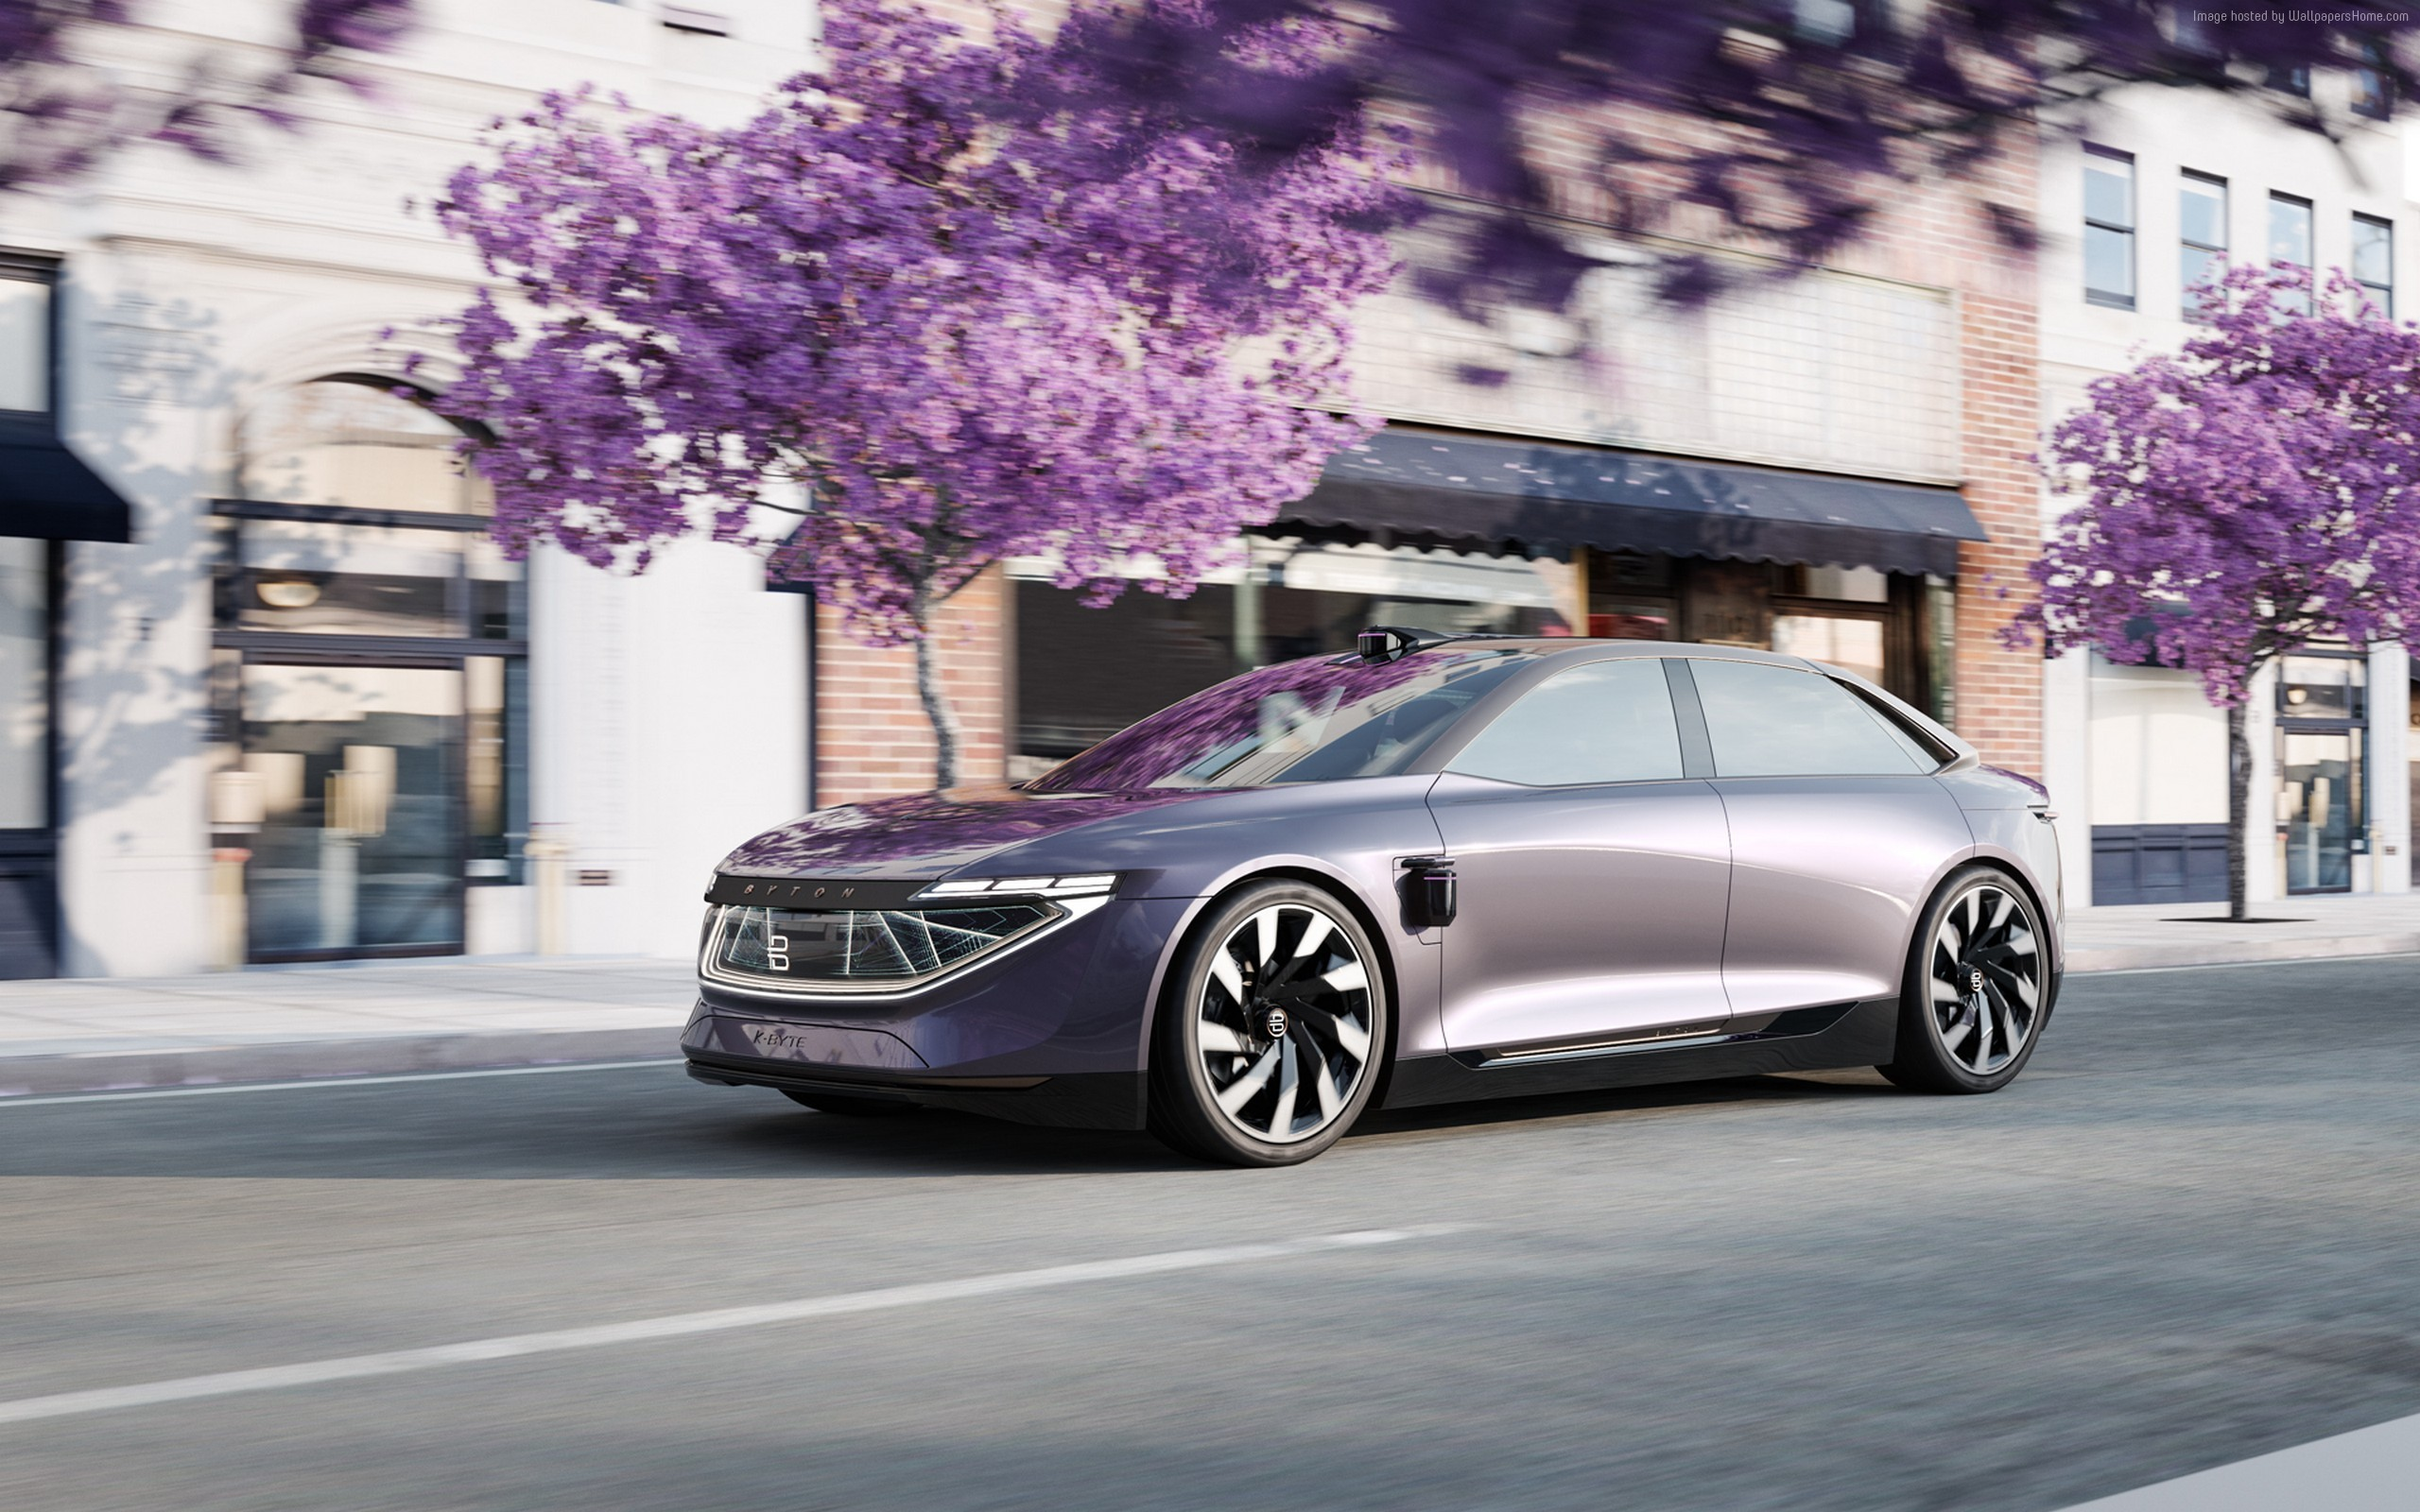 Wallpaper Of Byton K Byte Concept Electric Car 2018 Cars